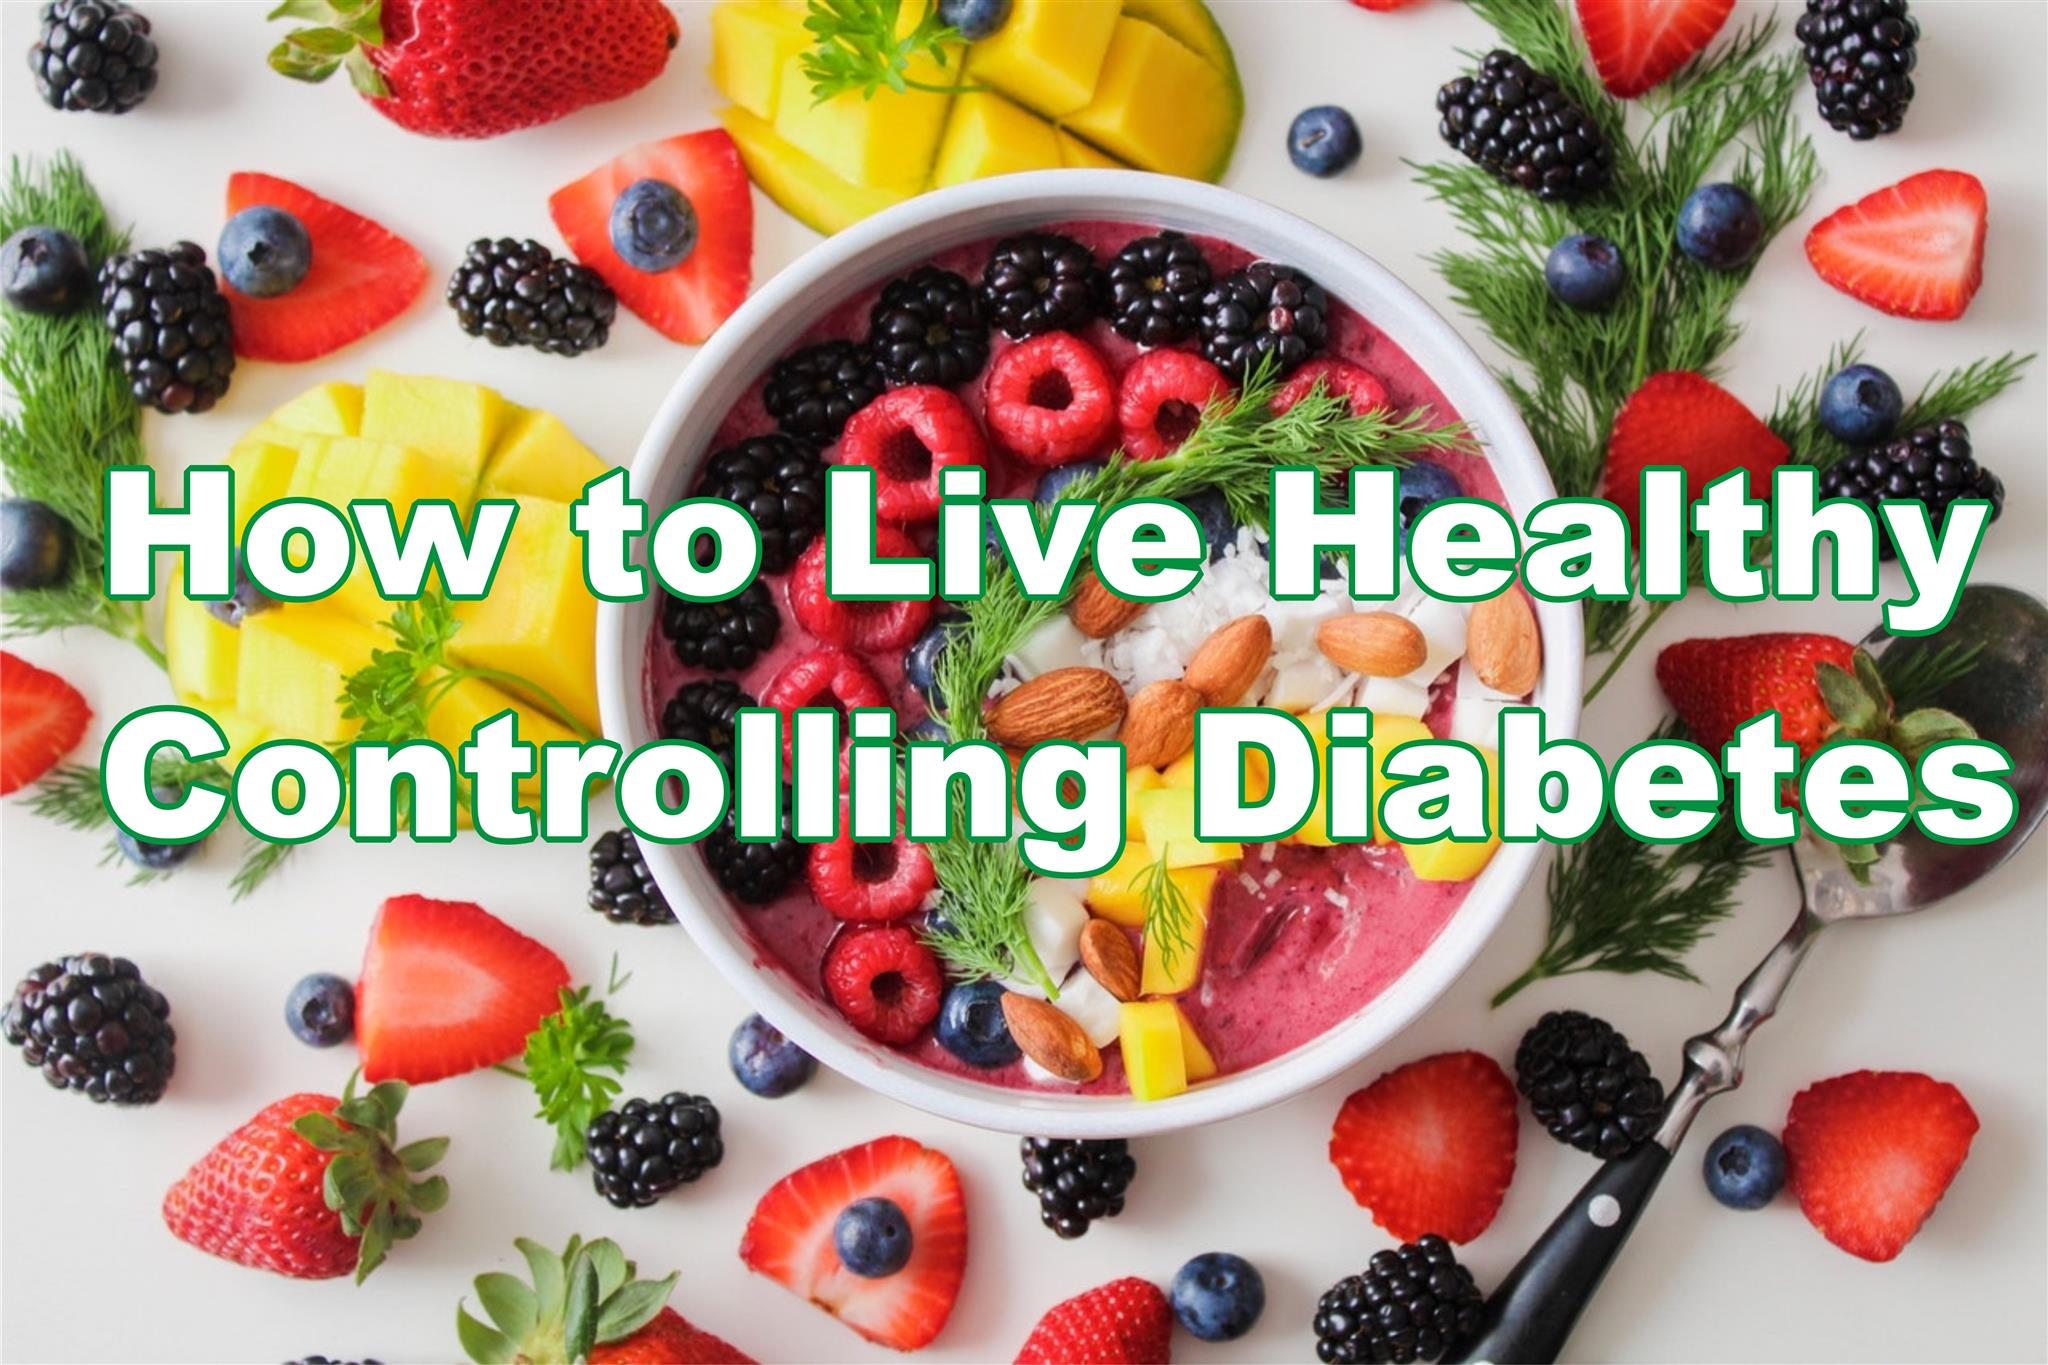 How to Live Healthy Controlling Diabetes